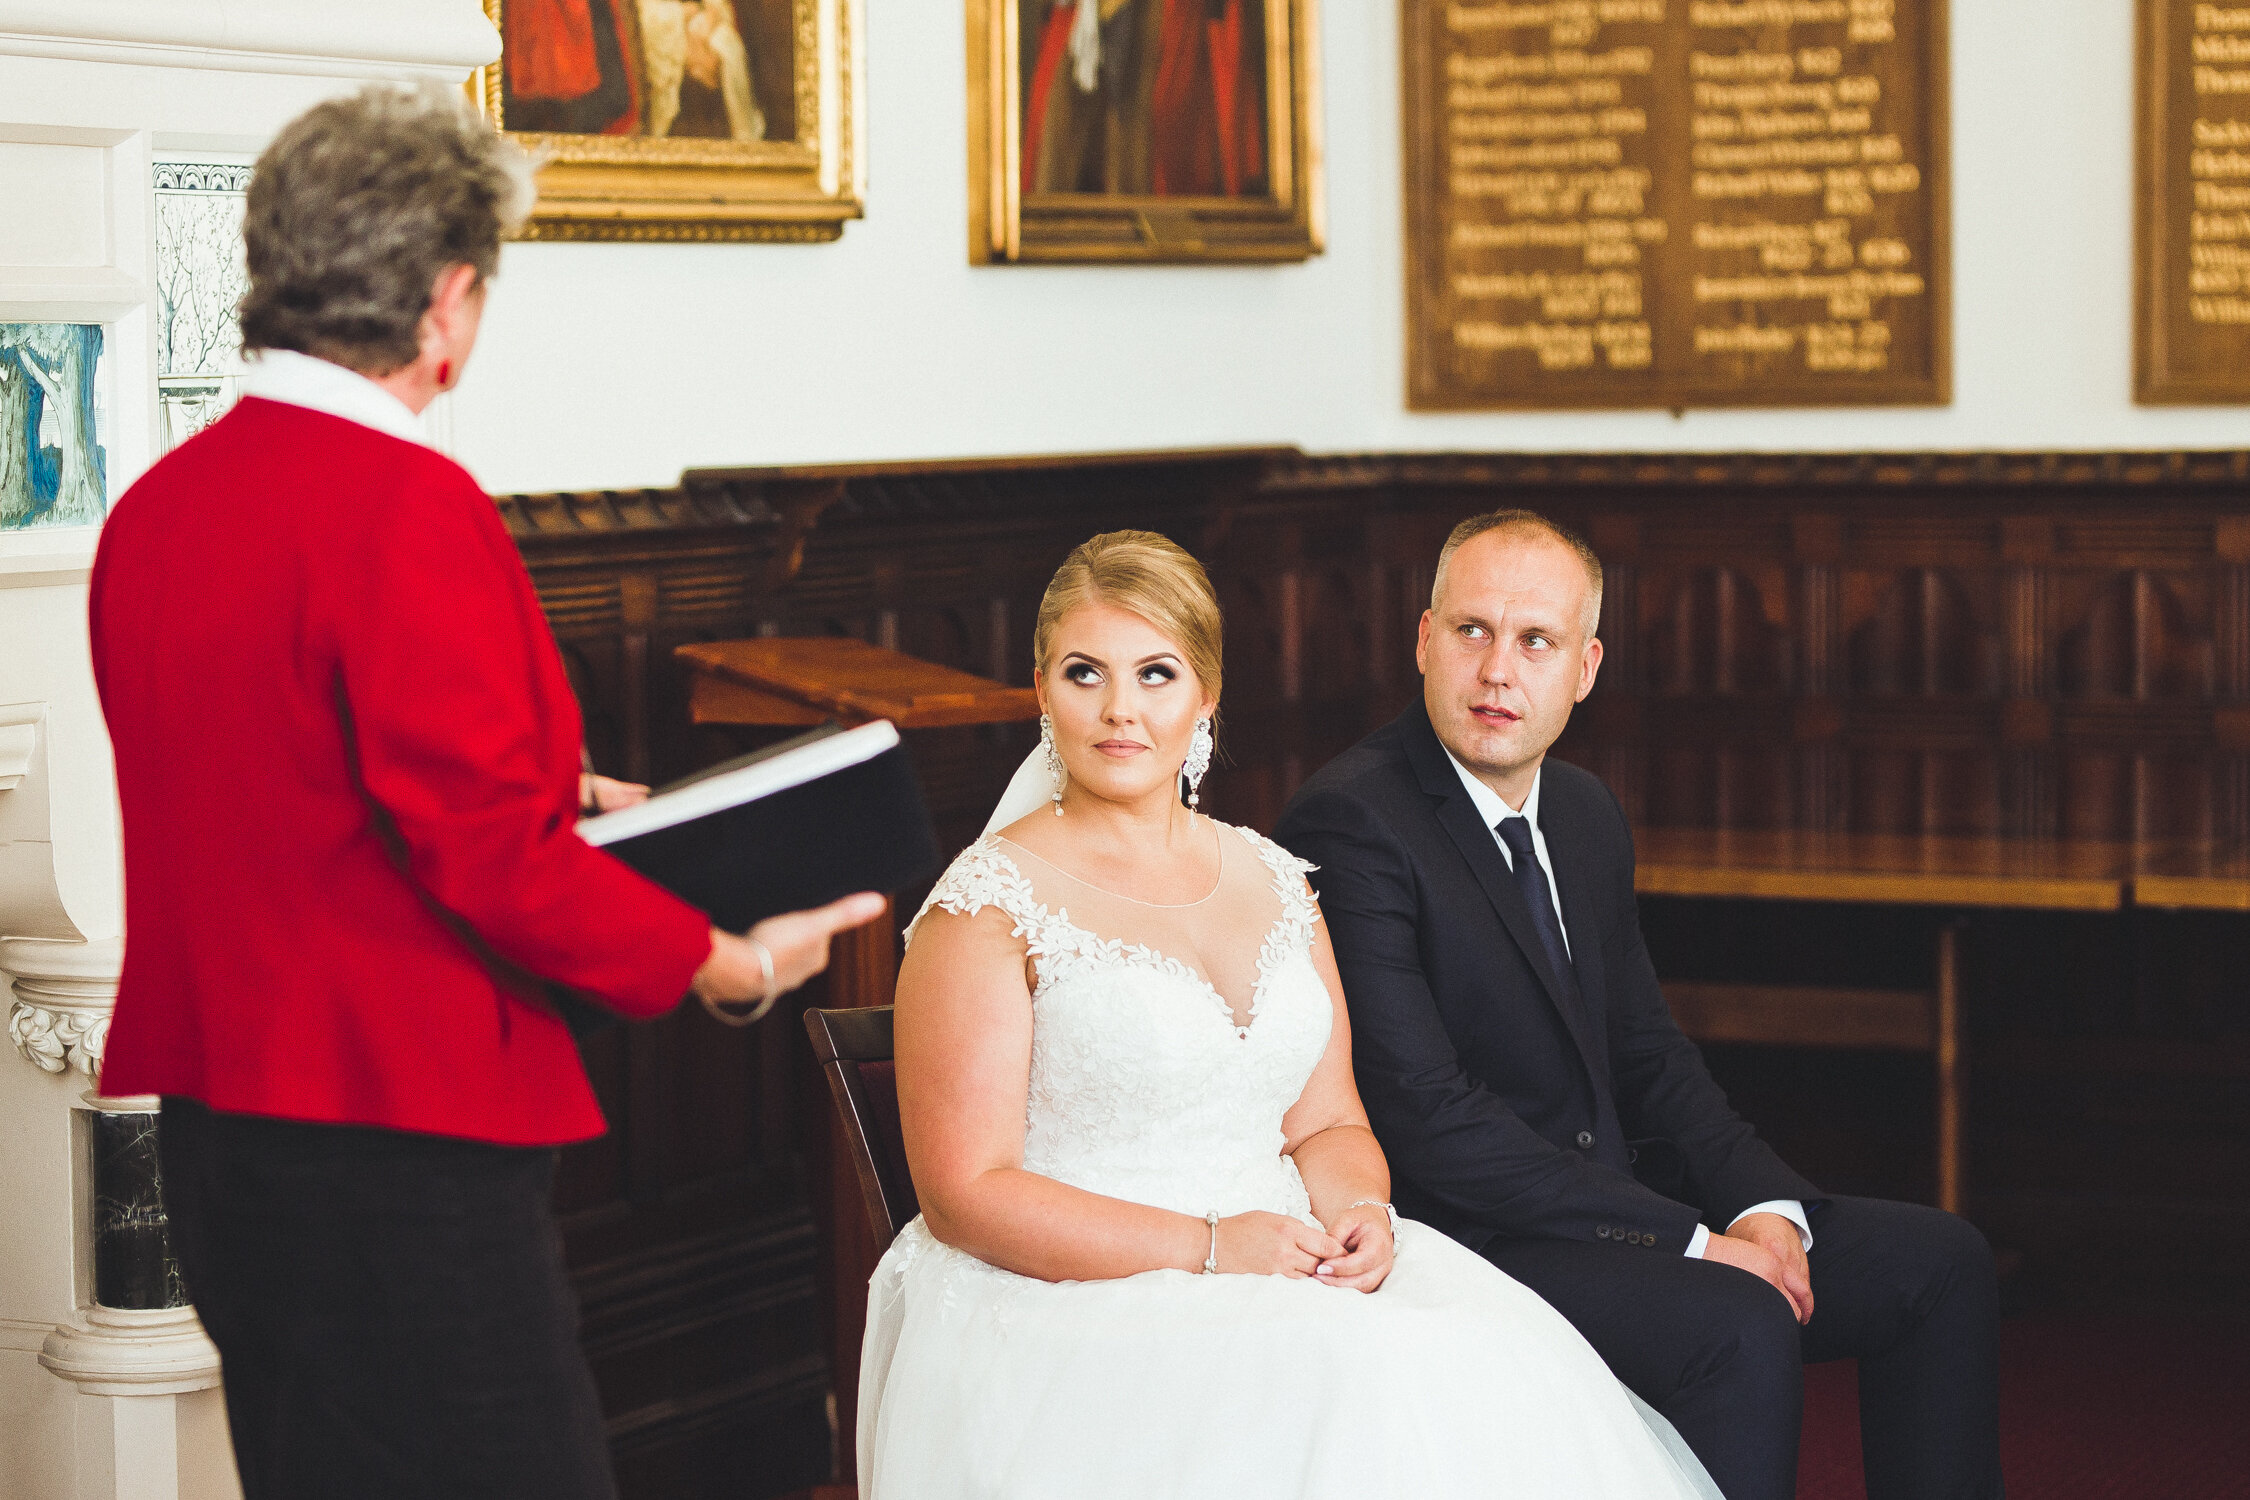 East Sussex Wedding Ceremony in Hasting